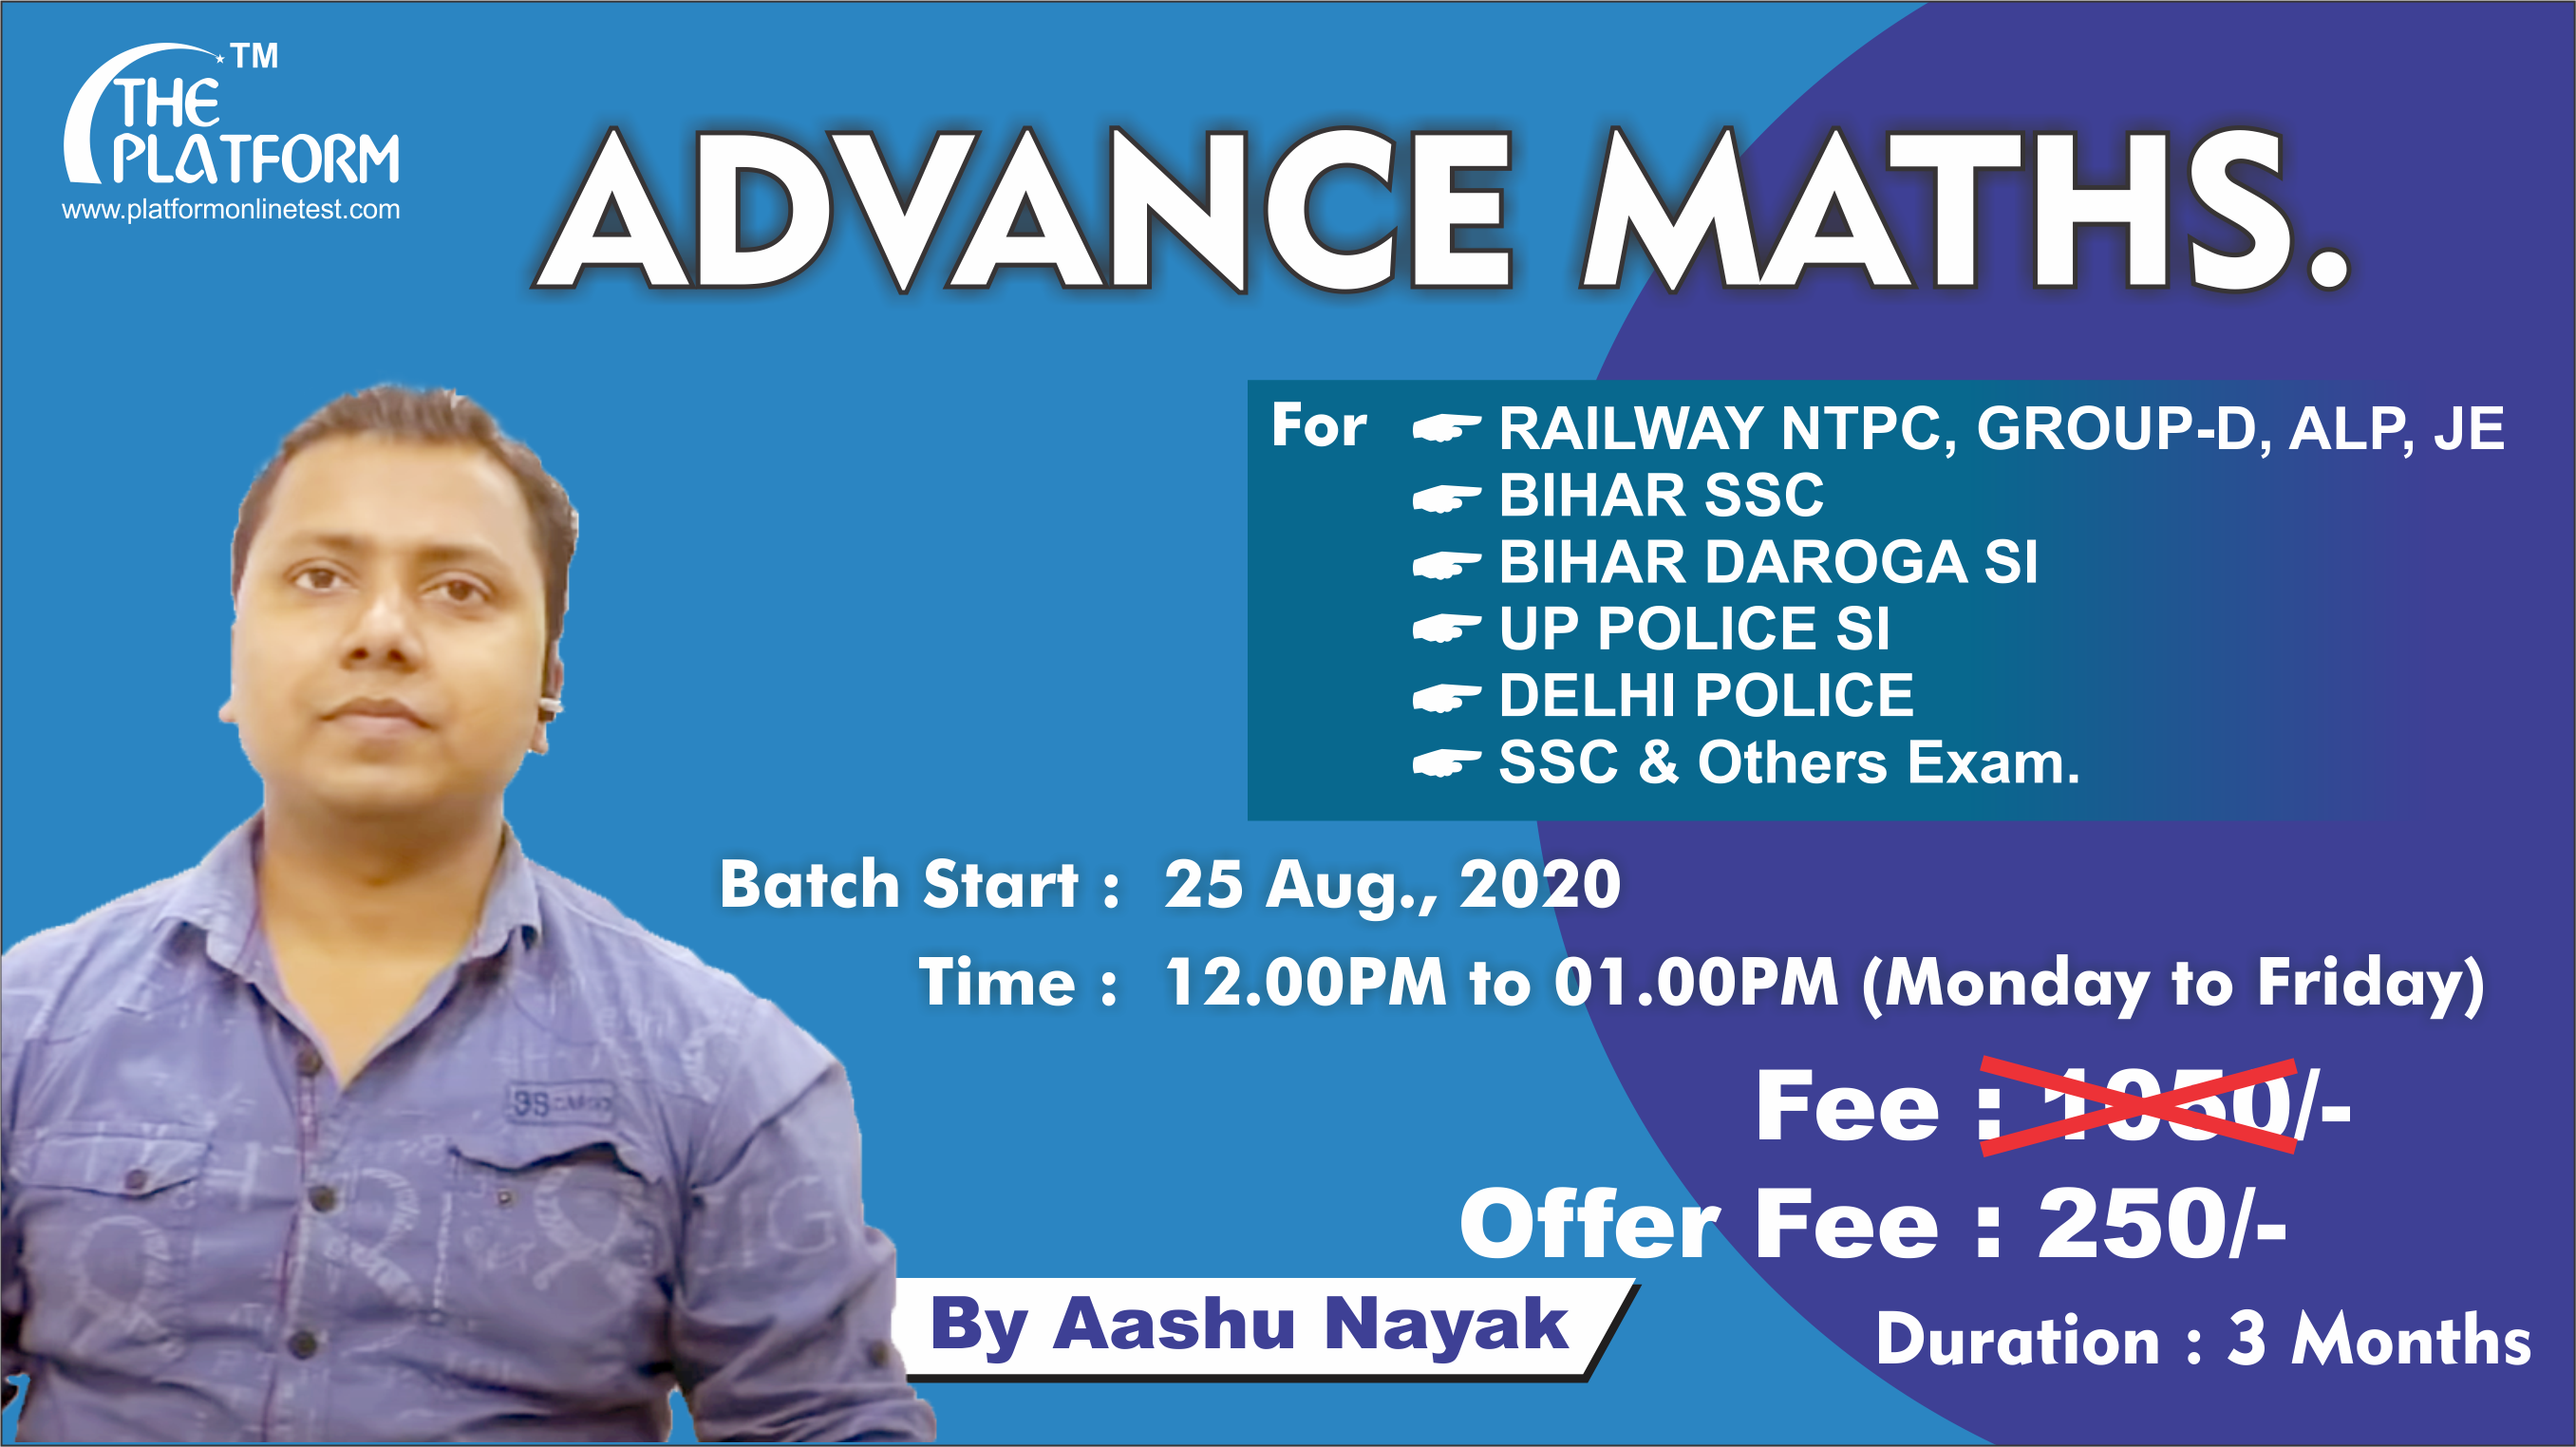 03-ADVANCE MATHS. By Aashu Nayak, Session-01